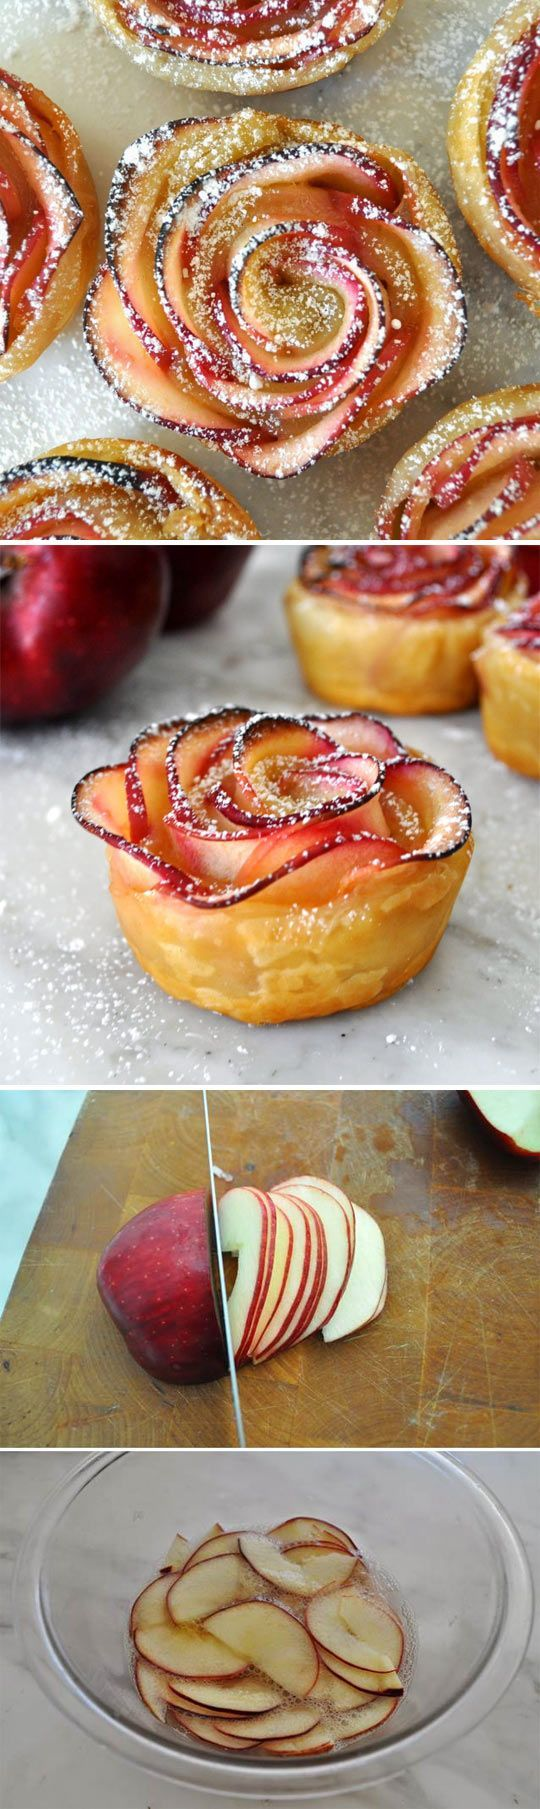 Apple Rose Dessert Pastry http://valyastasteofhome.com/apple-roses-desert-recipe/#more-2899 More